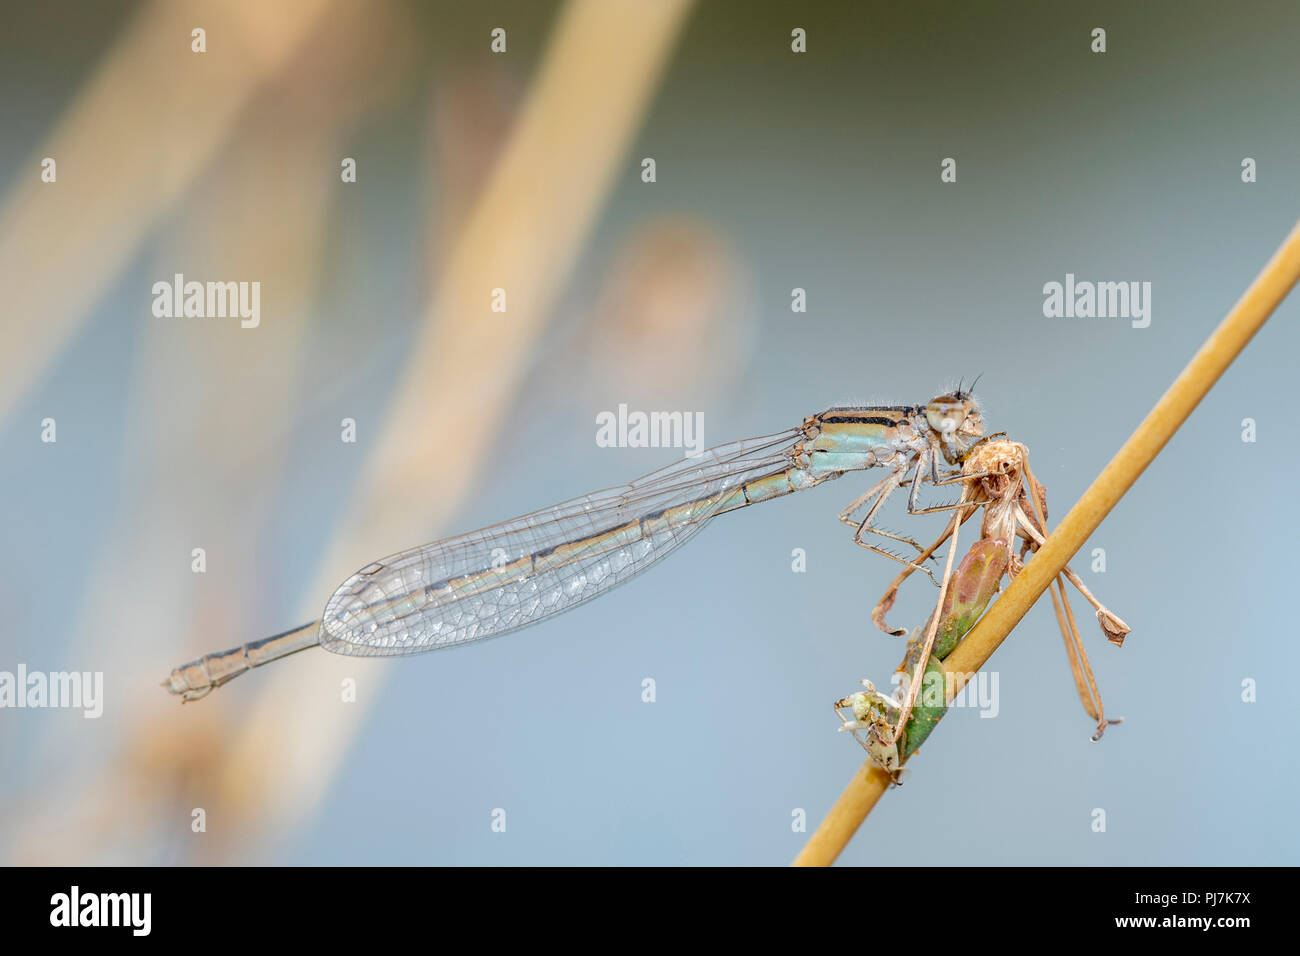 Macro of a Familiar Bluet Damselfly (Enallagma civile) Holding onto a Dried Stalk on the Plains of Eastern Colorado - Stock Image